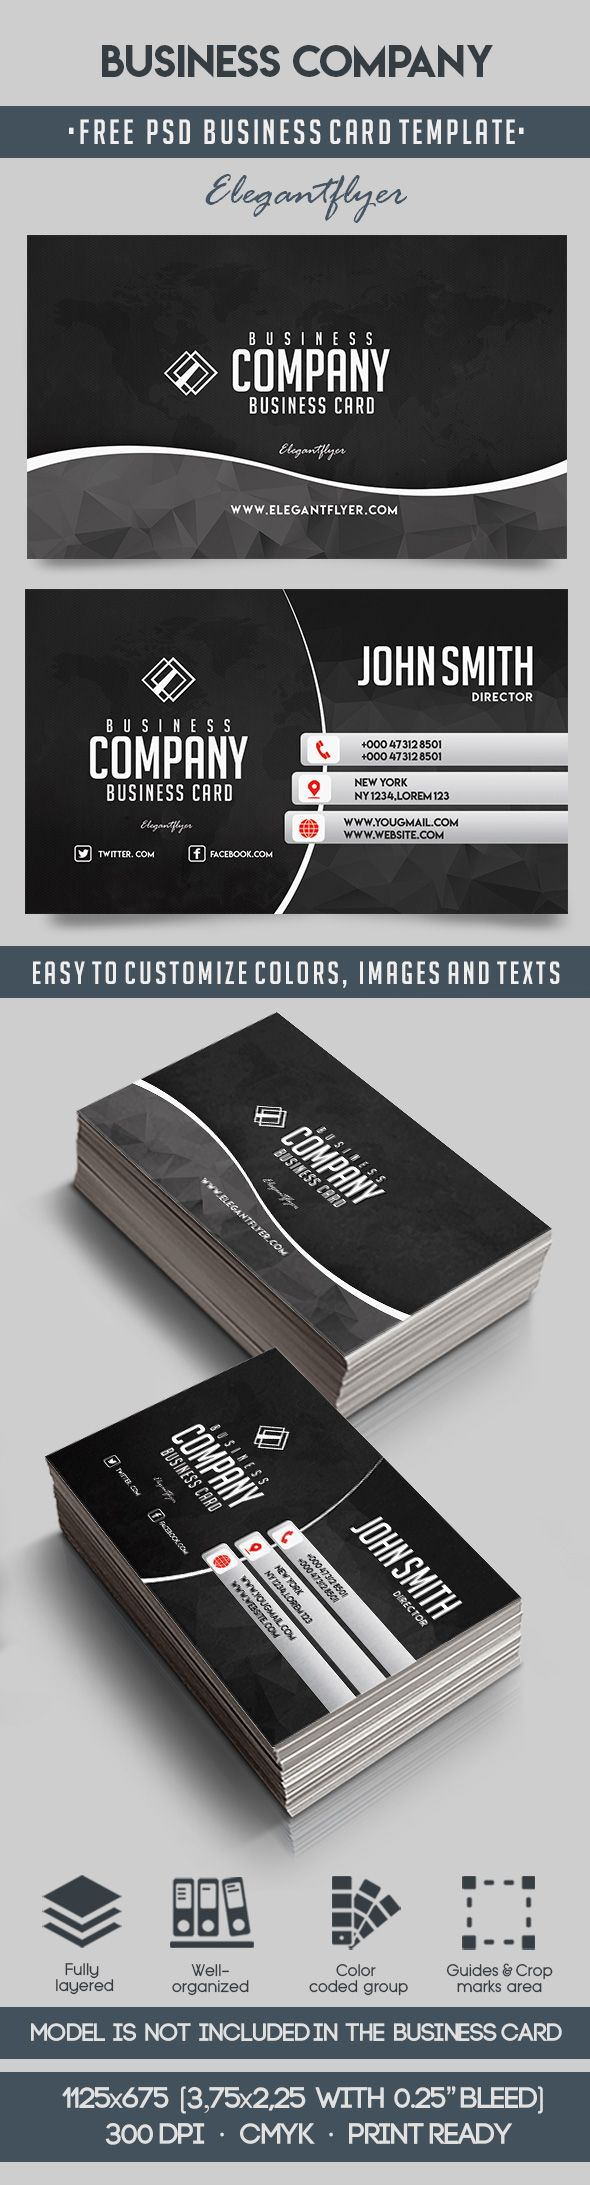 Business Company – Free Business Card Templates PSD